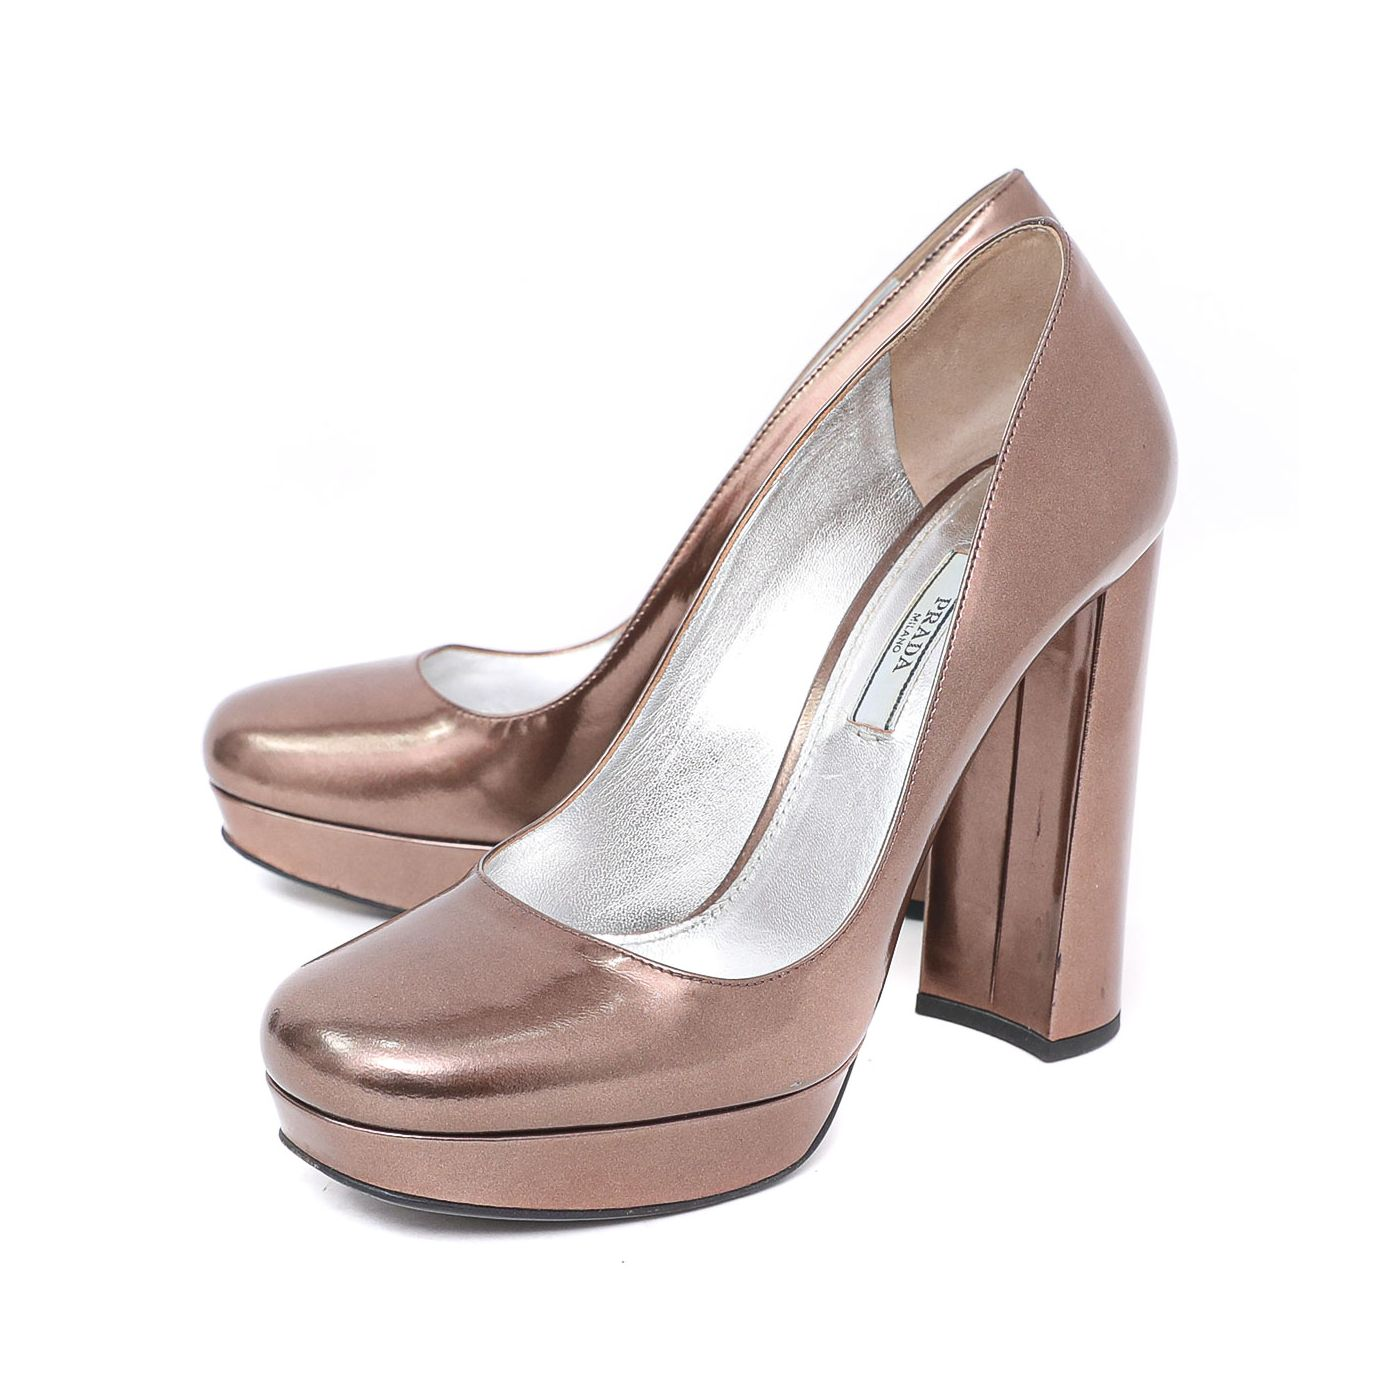 Prada Metallic Bronze Platform Round Toe Pumps 38.5